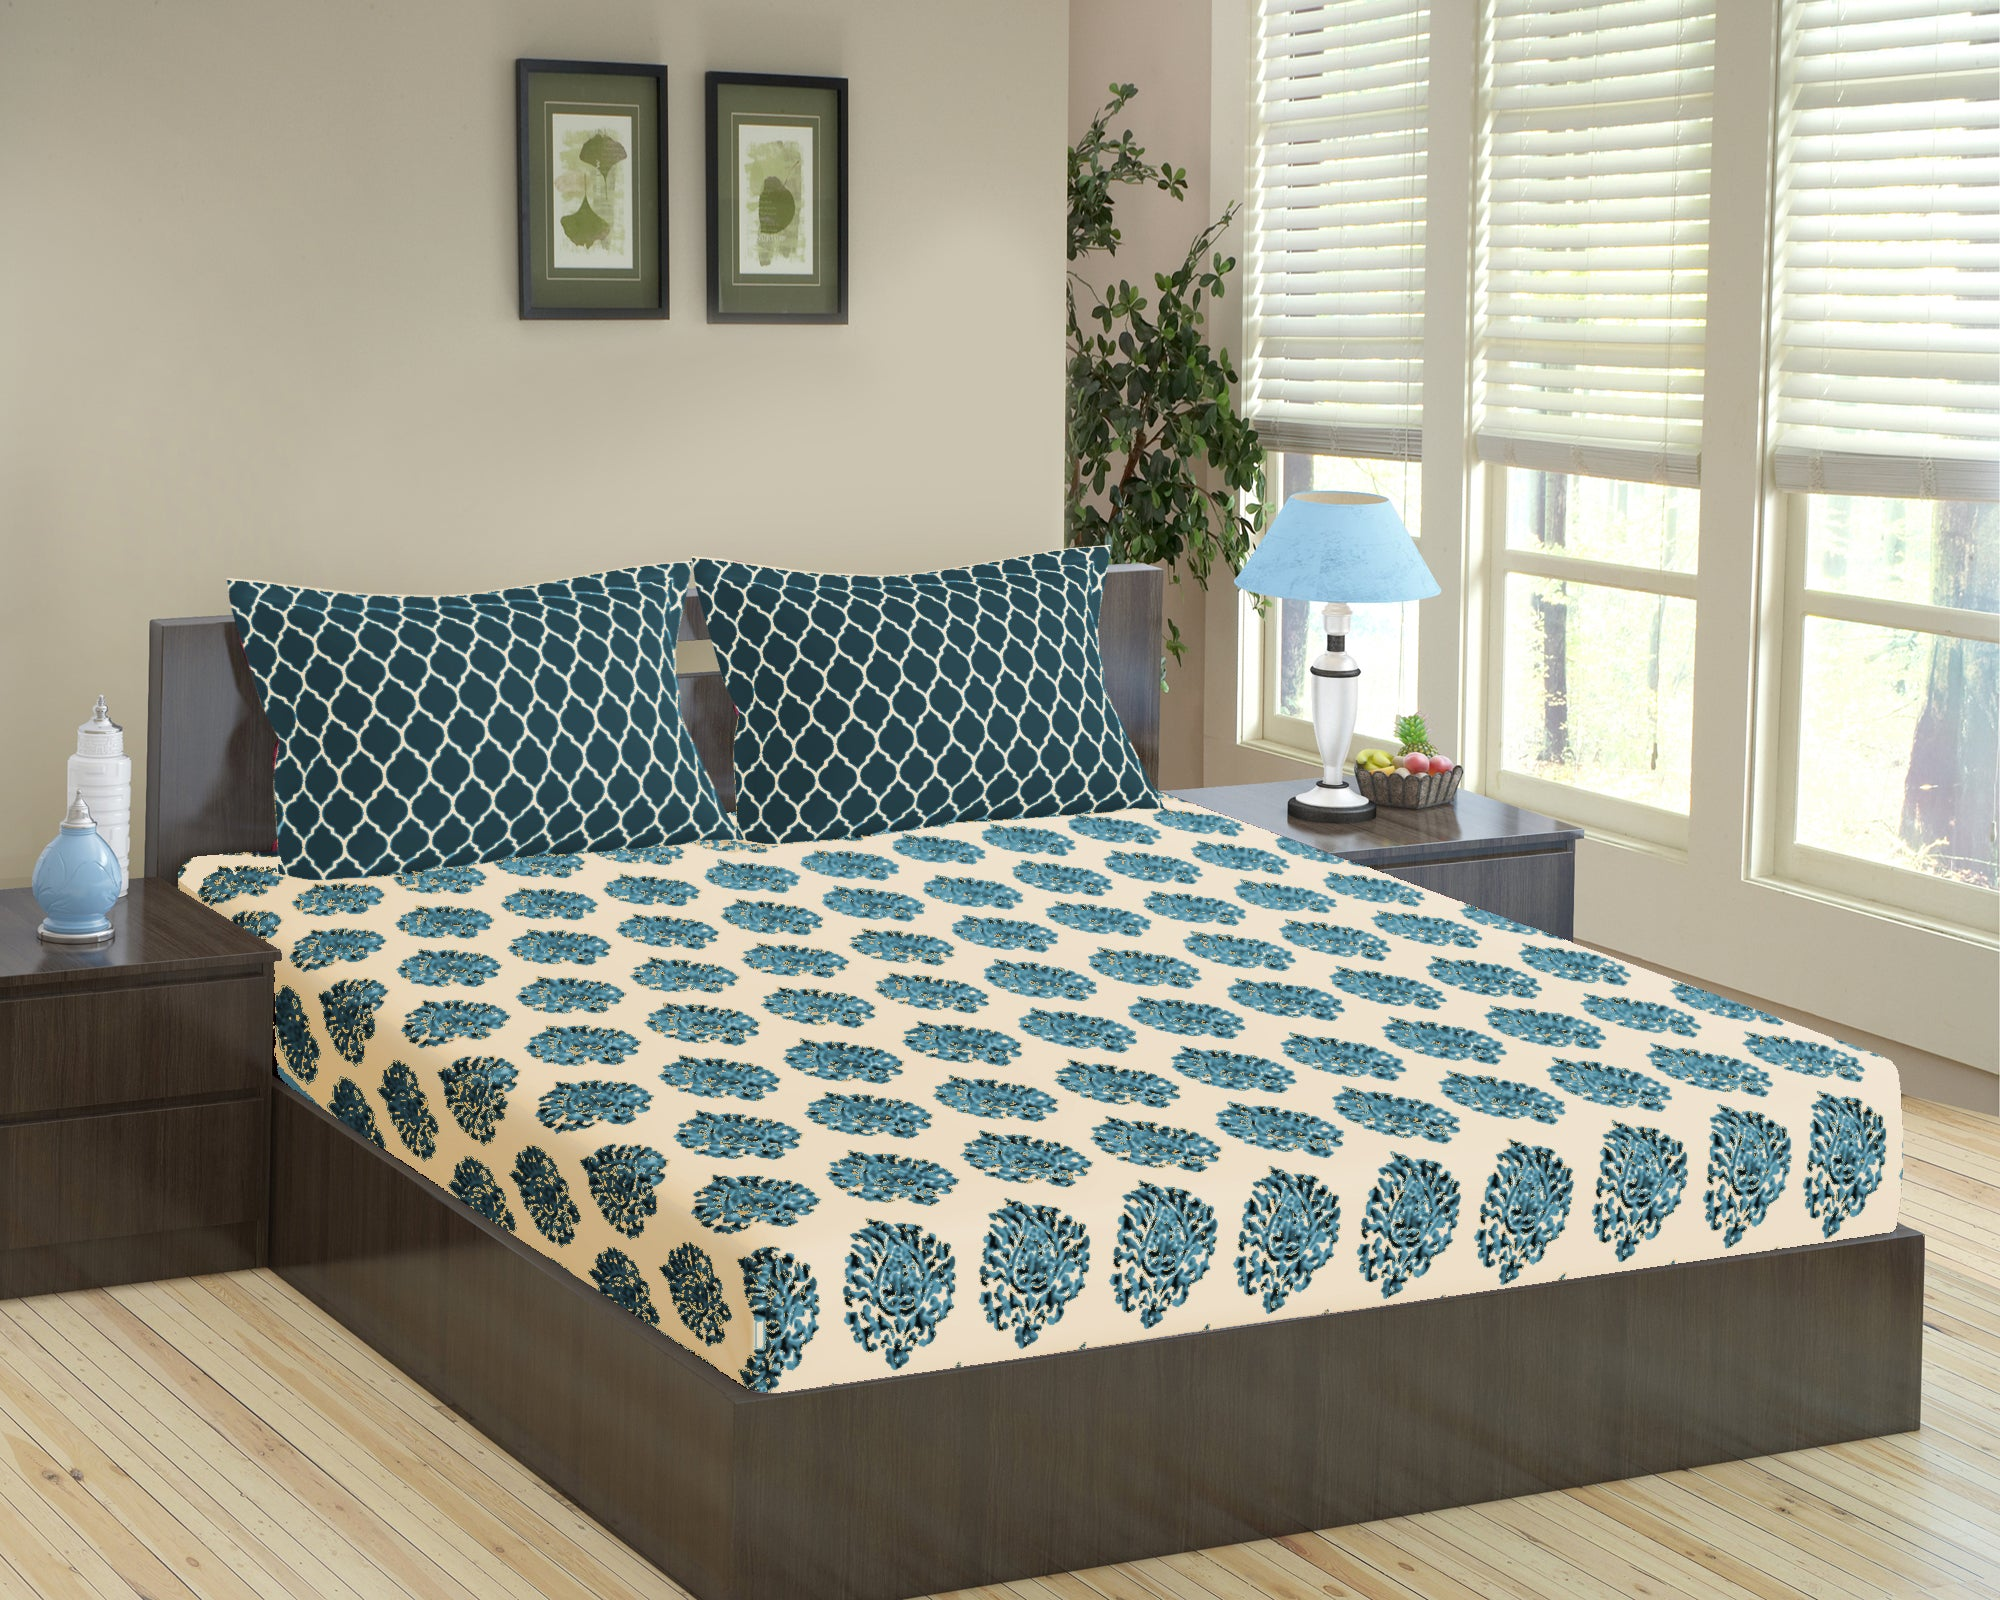 Trance Home Linen 100% Cotton 200 TC Printed Queen Flat Bedsheet with 2 Pillow Covers (86 x 104 inches / 218 x 264 cms)